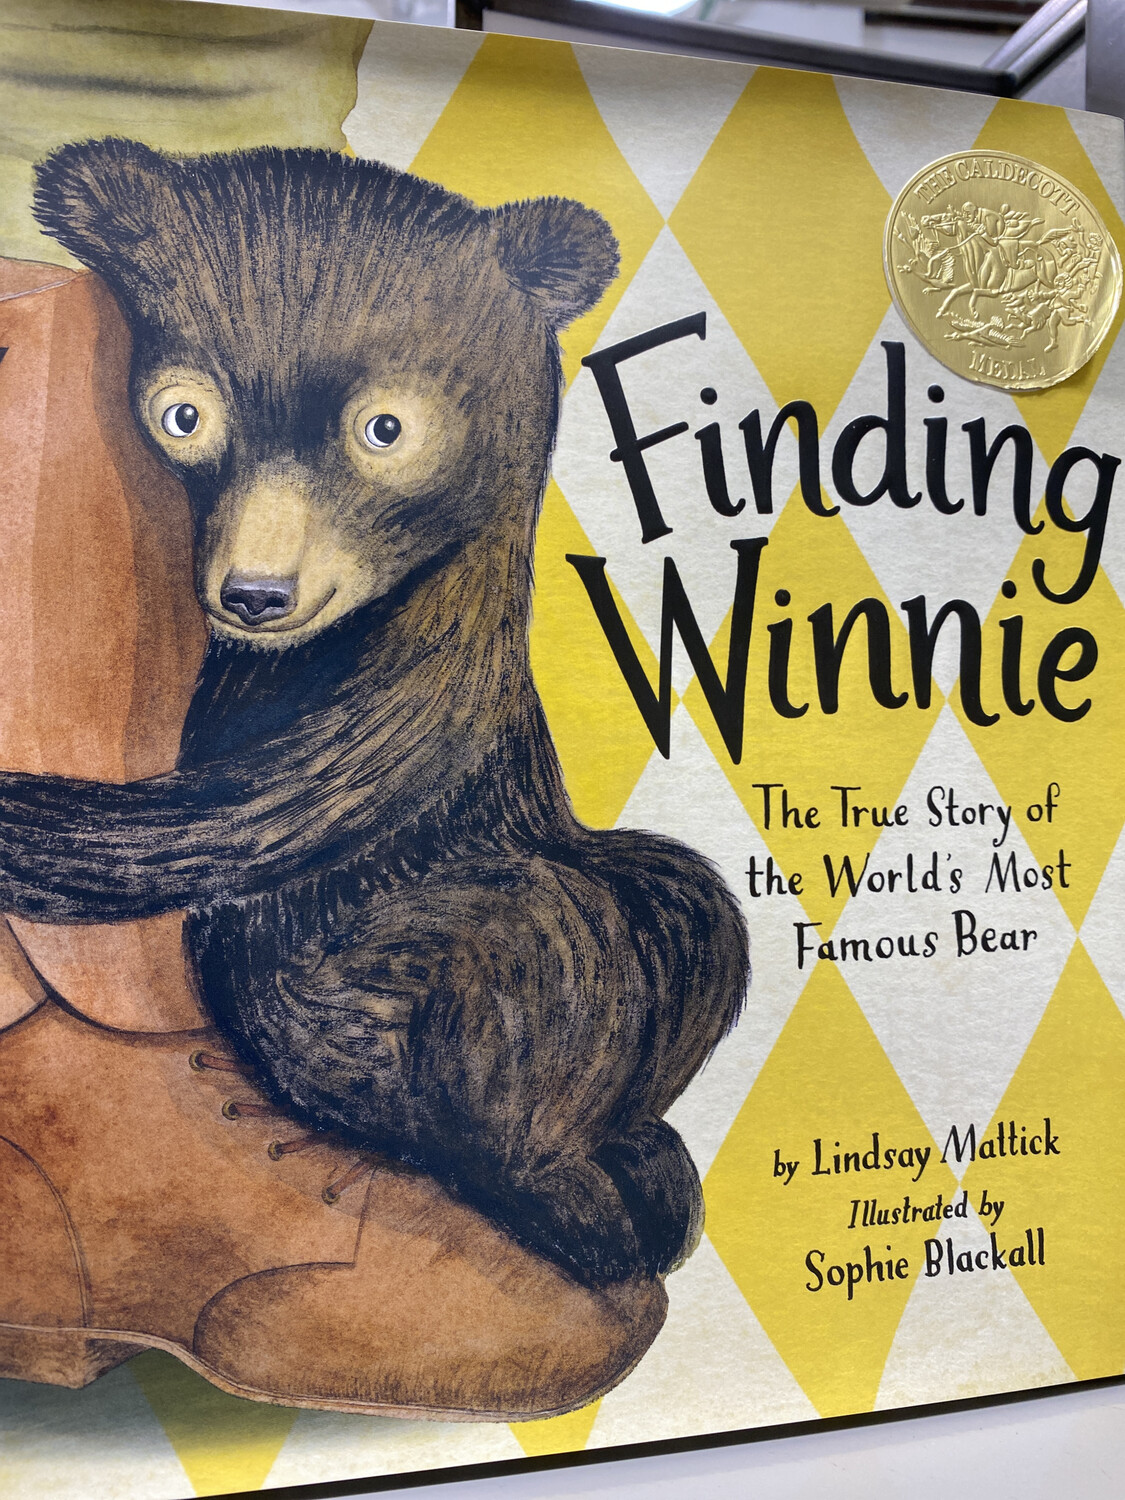 MATTICK, Finding Winnie, The True Story Of The World's Most Famous Bear